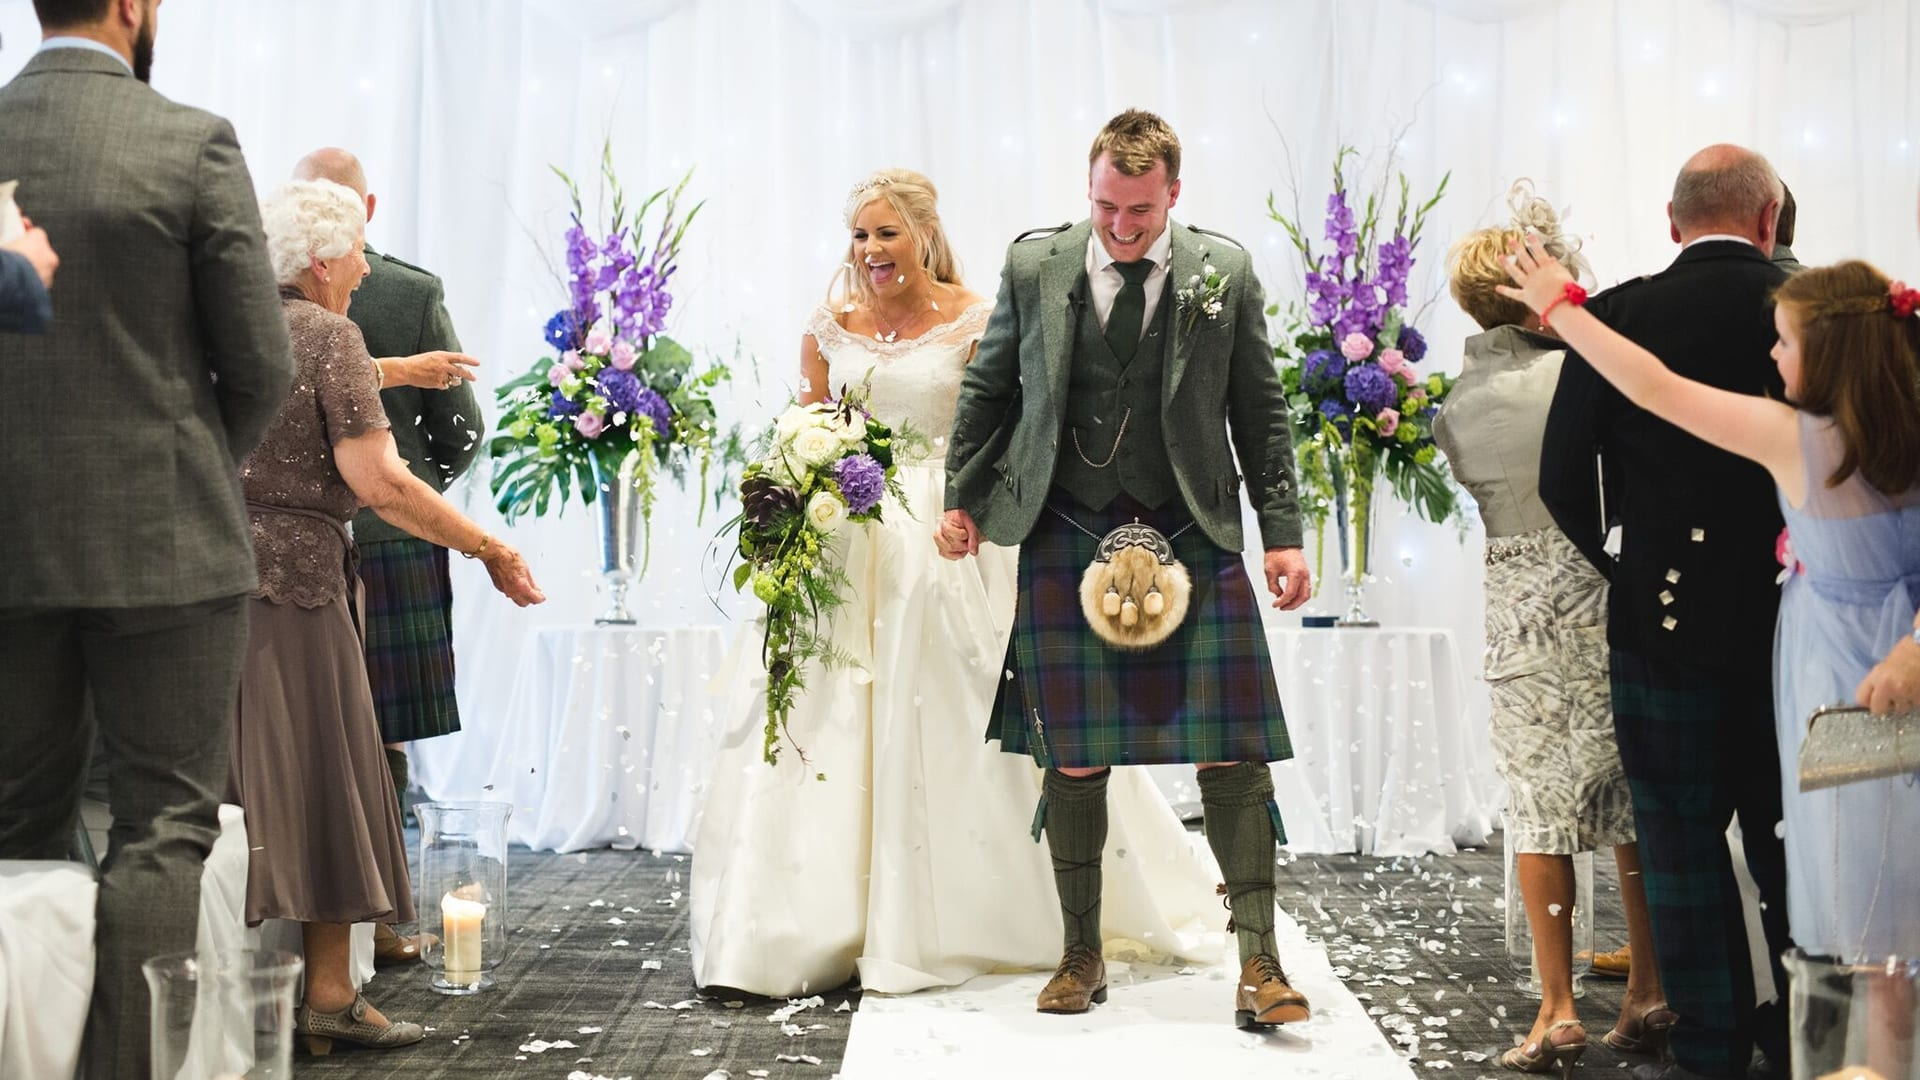 After wedding ceremony at Barony Castle